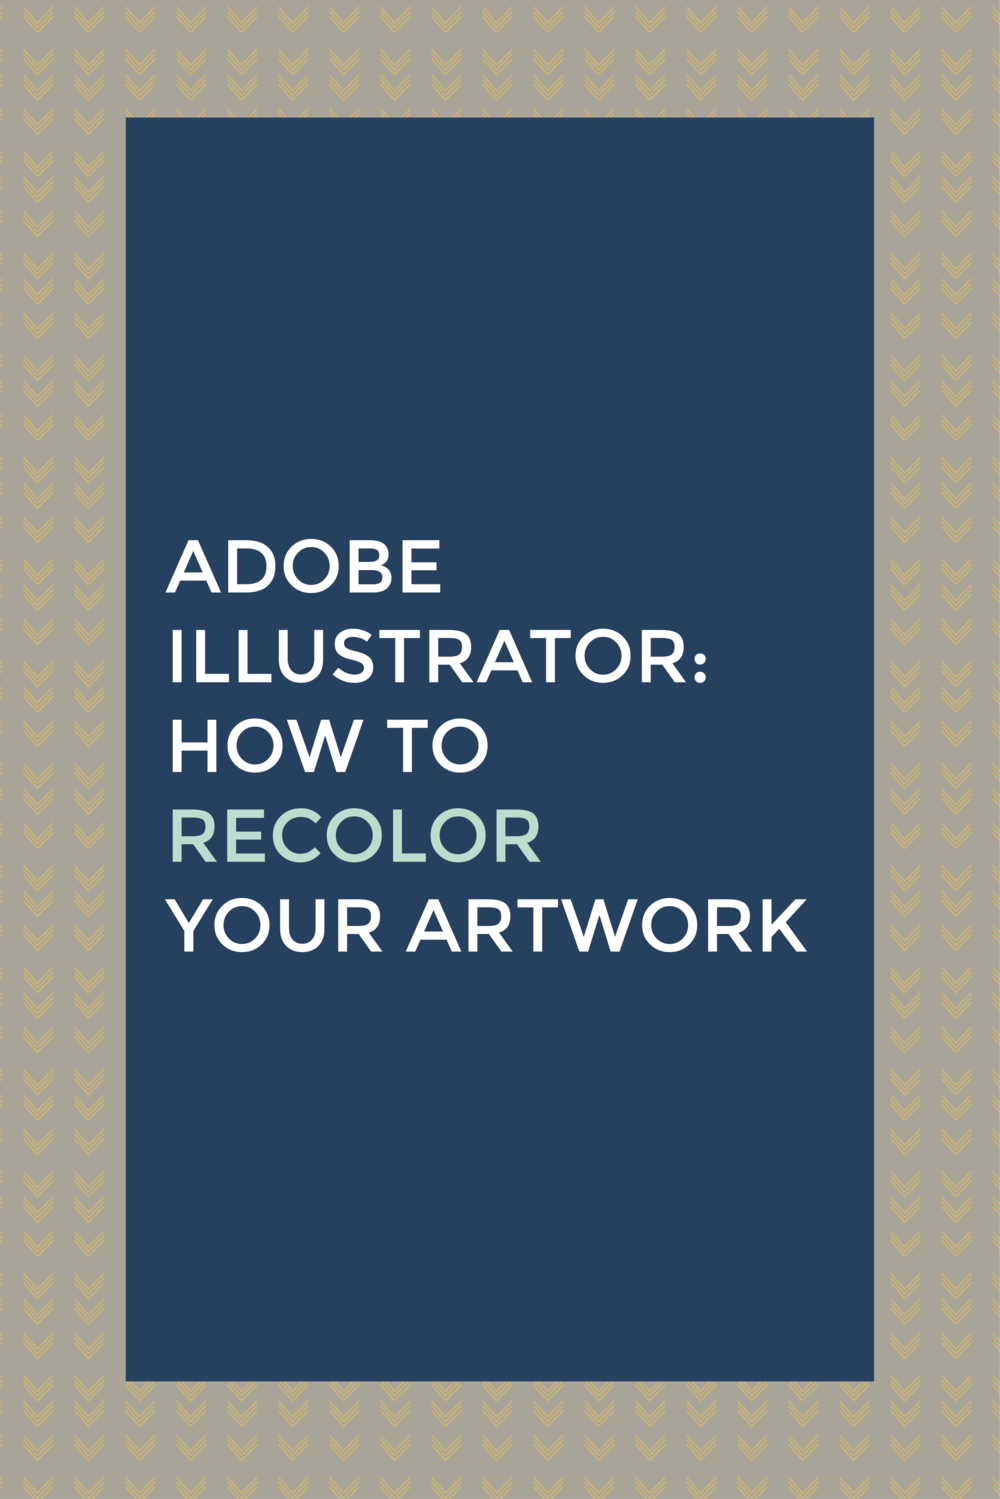 Adobe Illustrator how to recolor your artwork